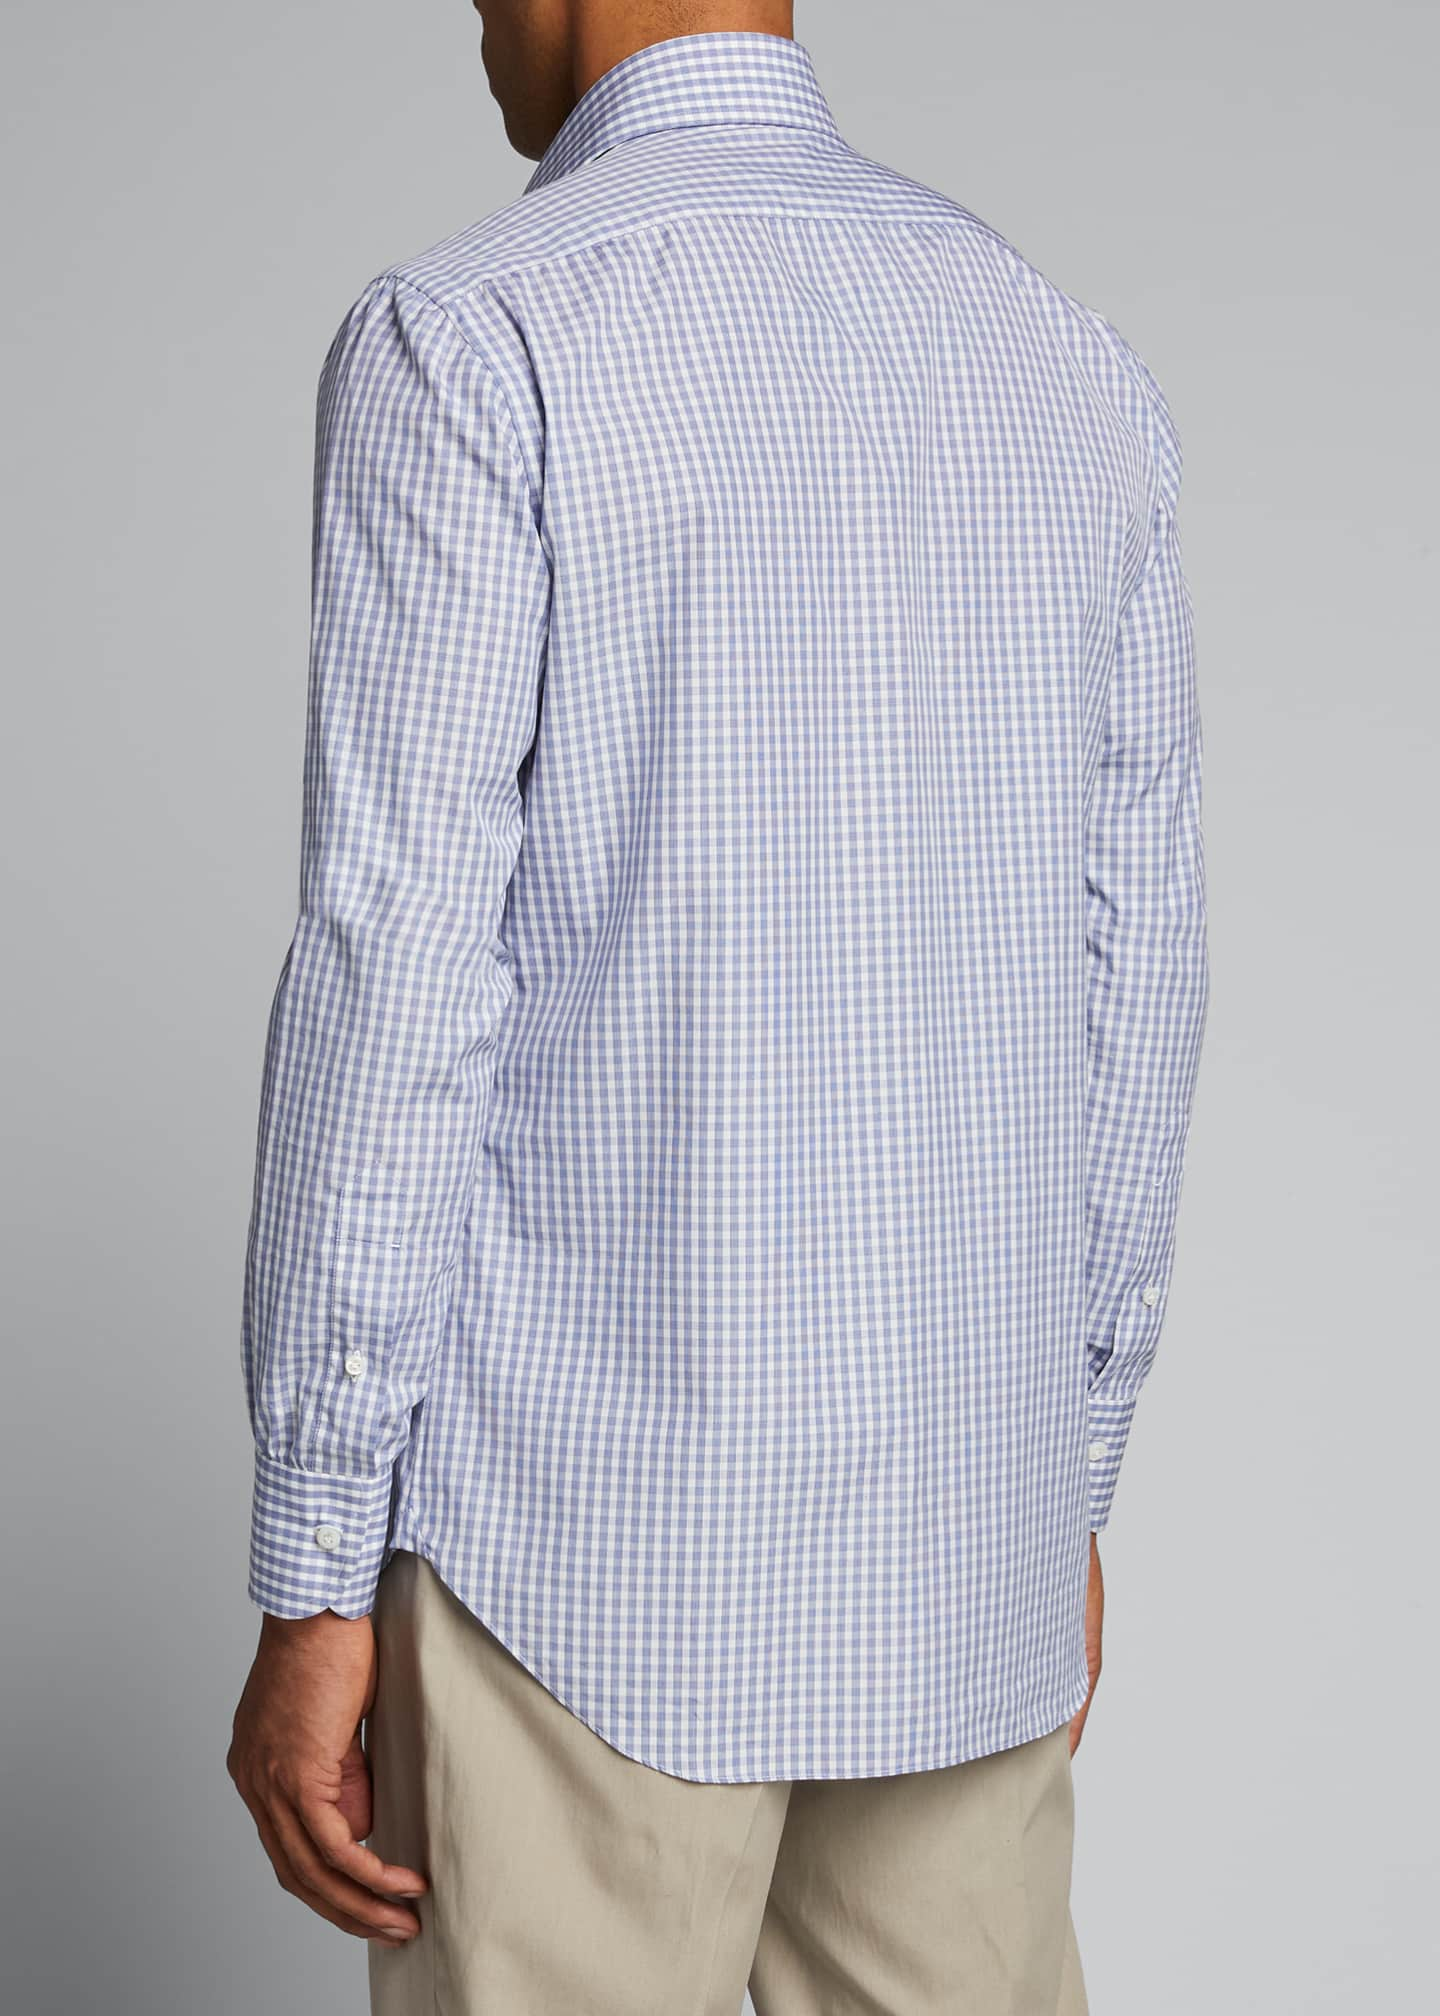 Image 2 of 5: Men's Check Cotton Sport Shirt